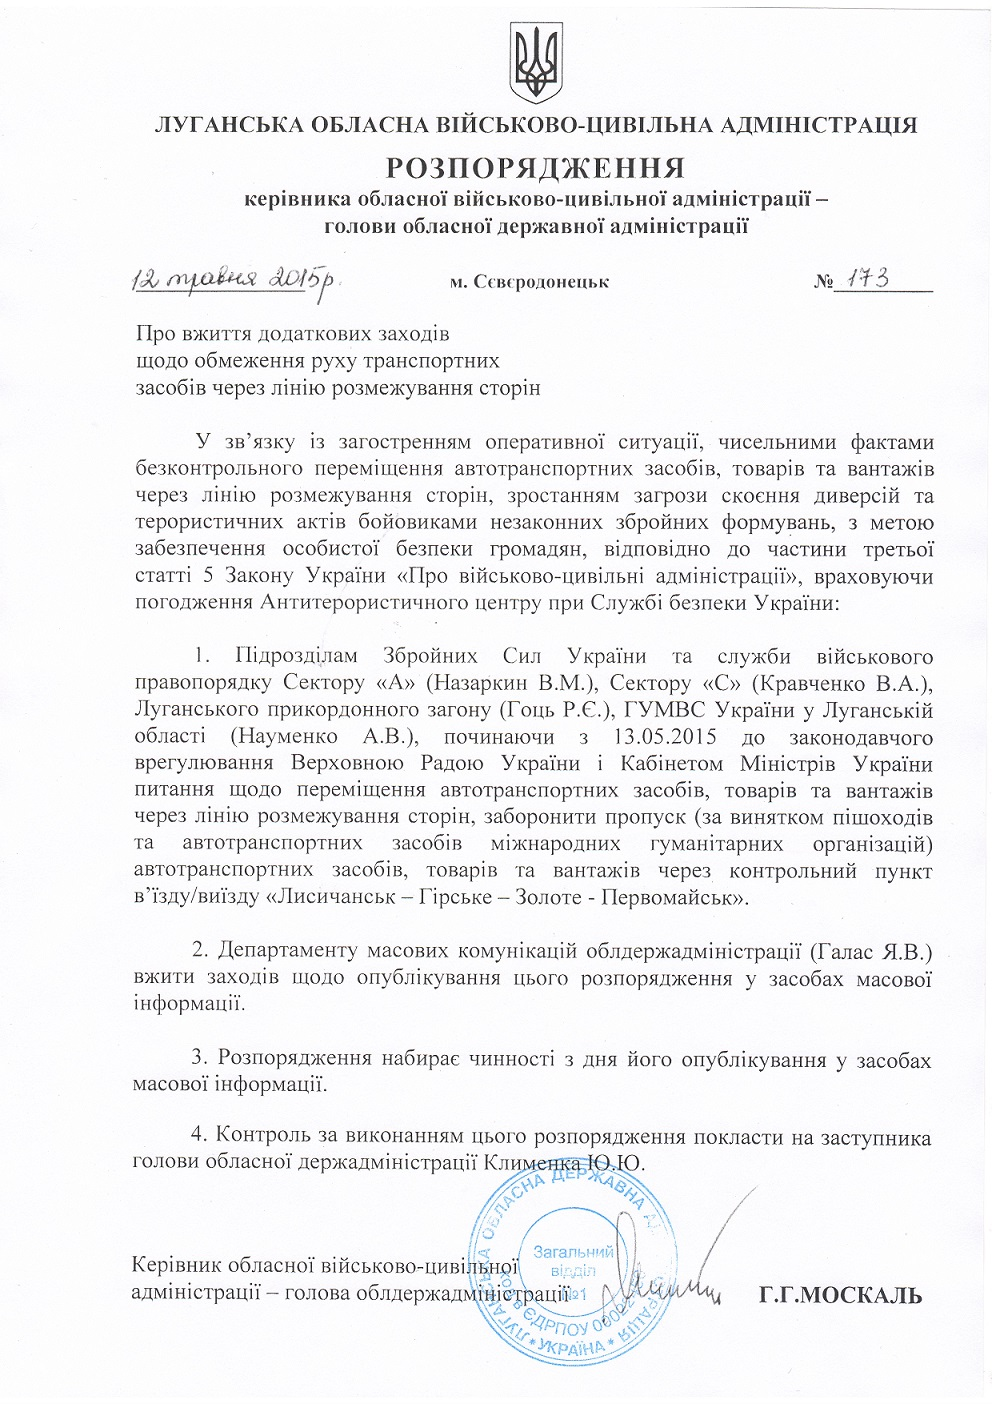 Moskal signed order that bans traffic to occupied territories of Lugansk Region